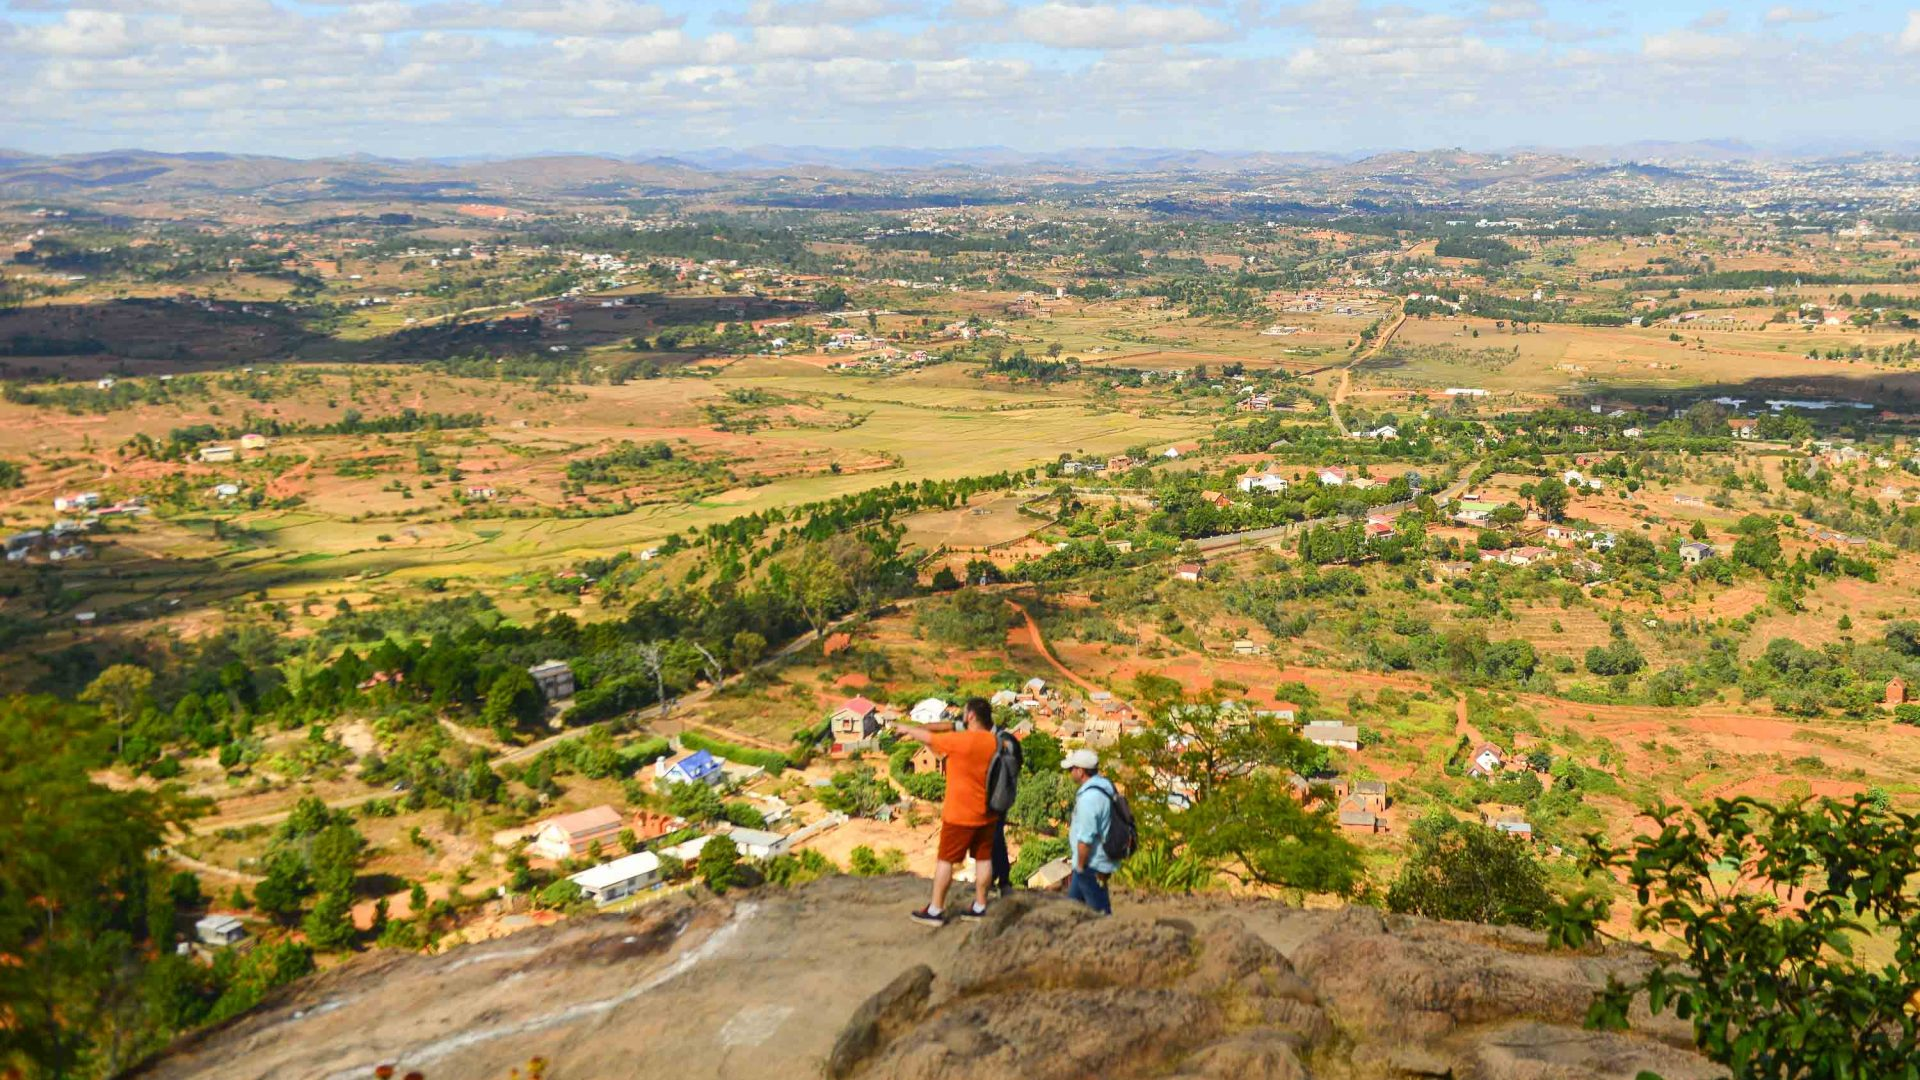 Hiking the Chemin des Escaliers, Madagascar.